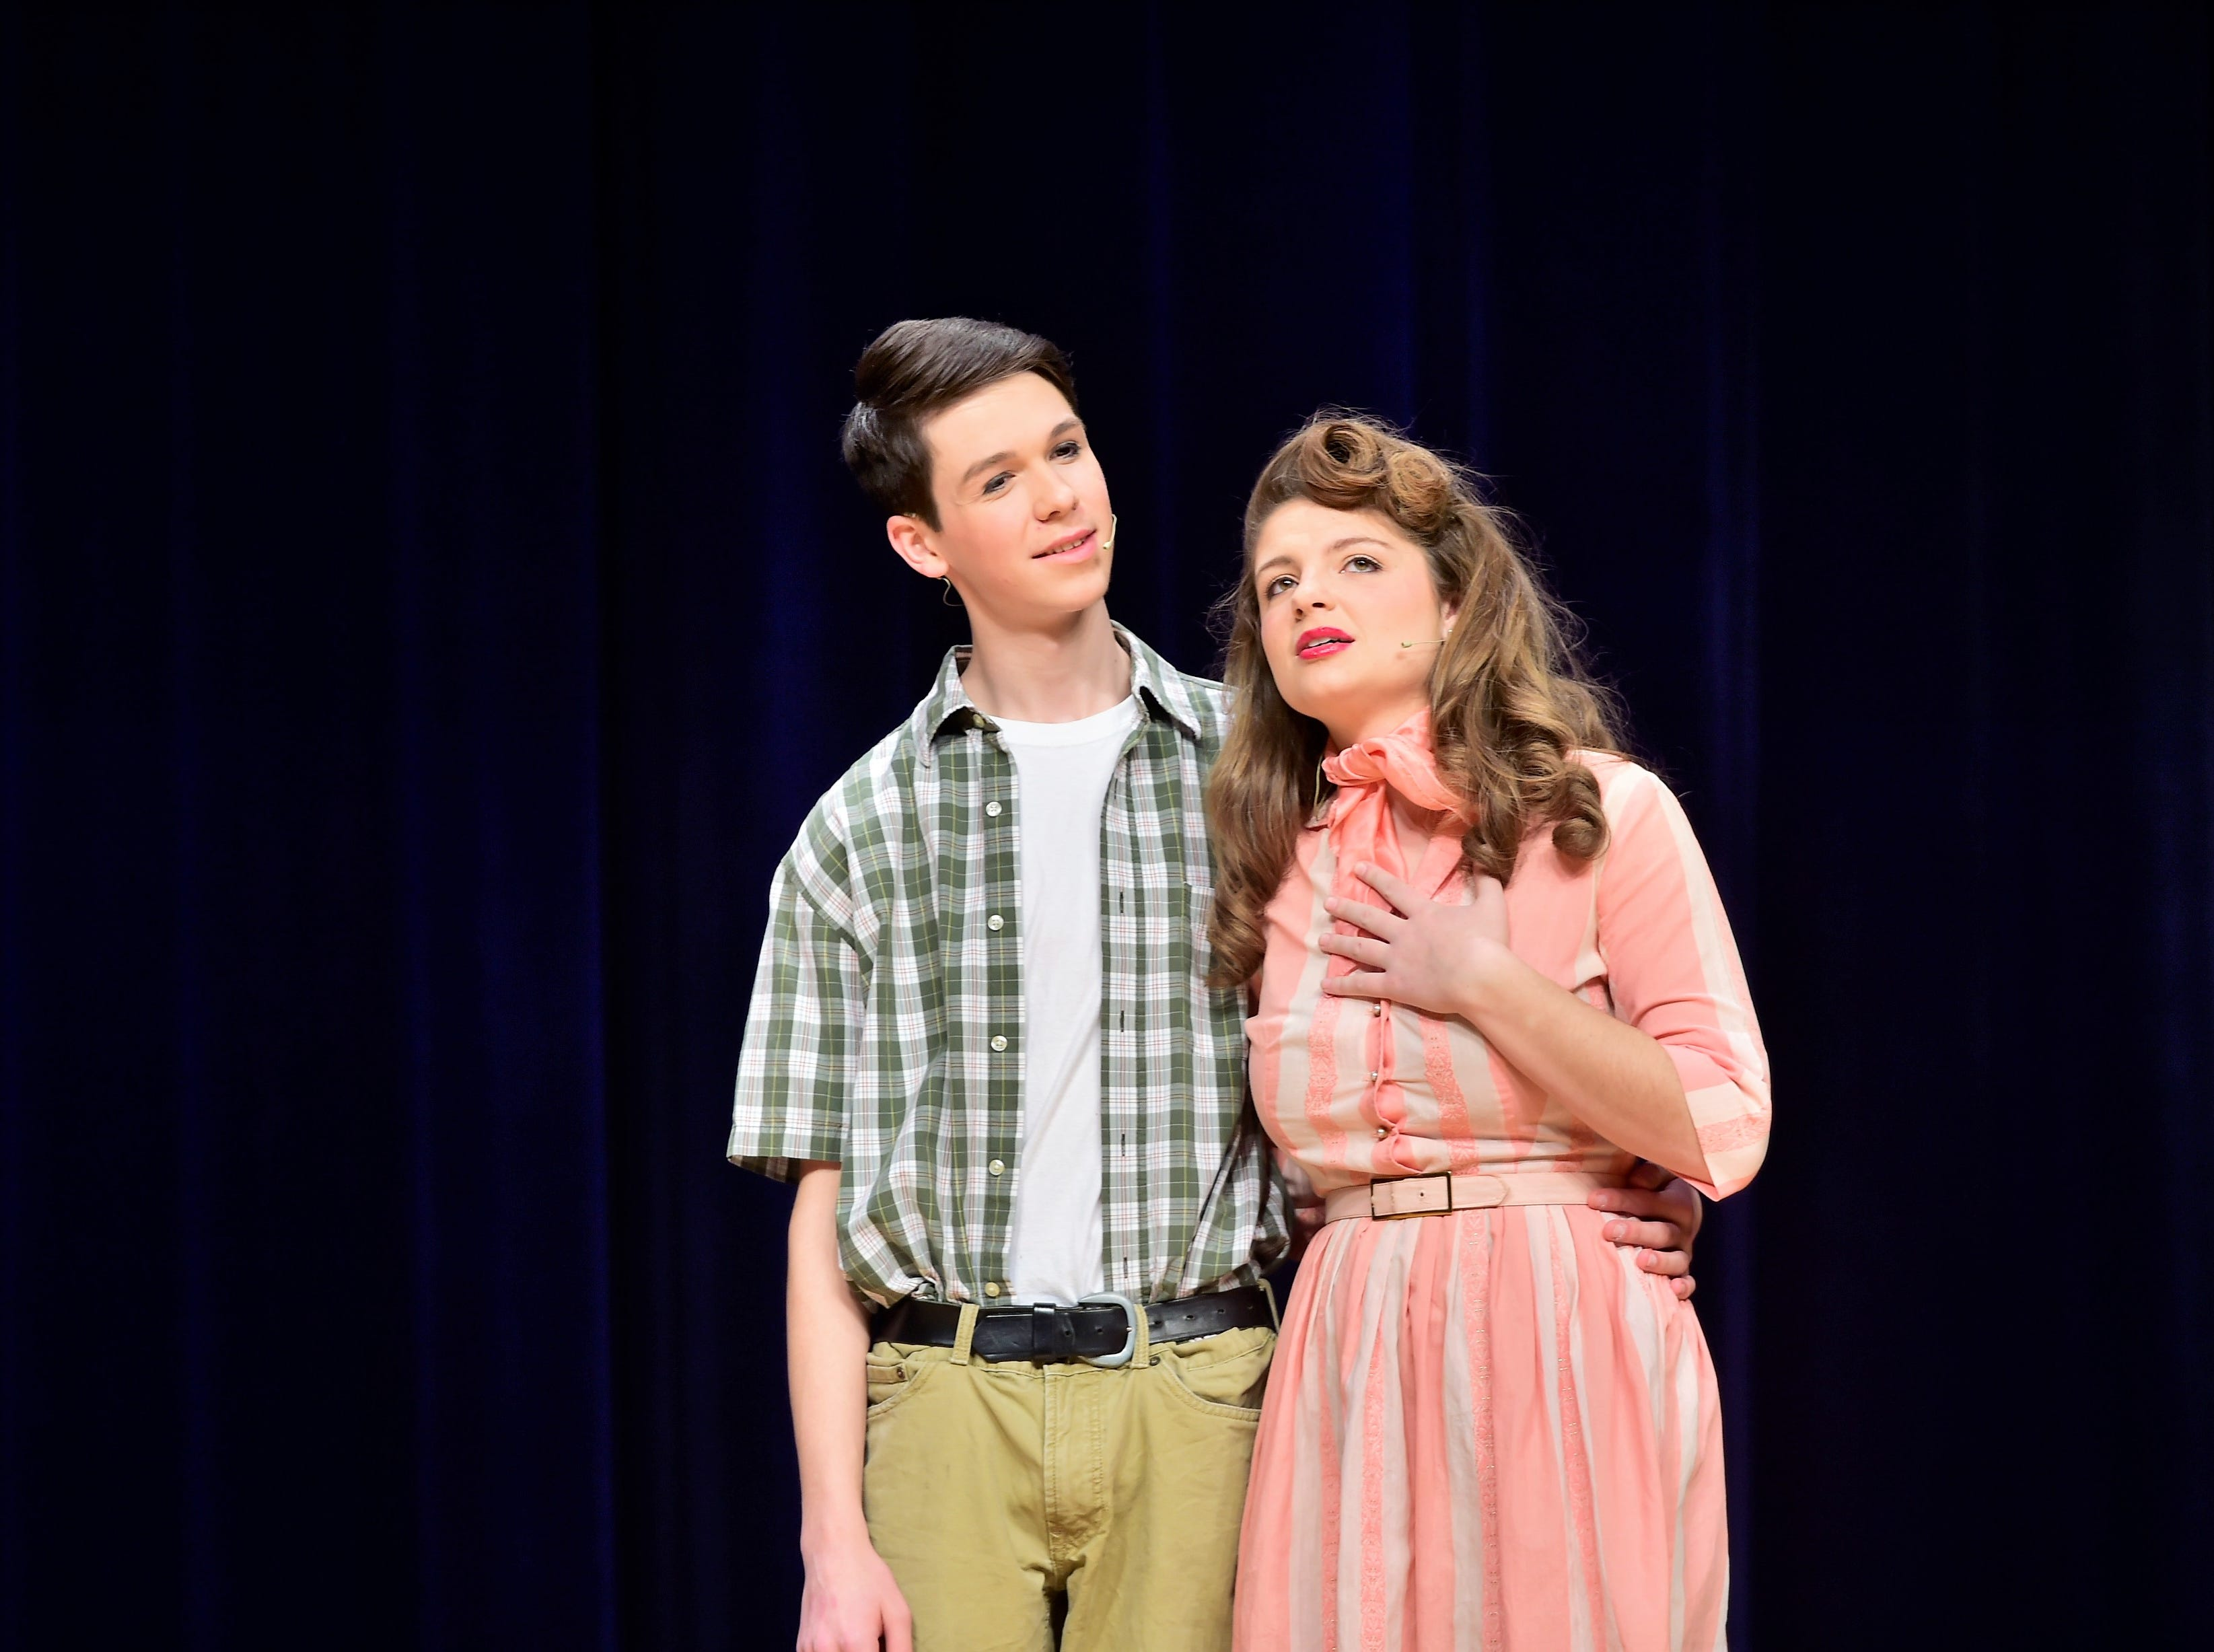 """John Payne (Prez) and Maddie Kohler (Gladys) perform a duet while rehearsing a scene from """"The Pajama Game,"""" on Sunday, March 10, 2019, at Waynesboro Area Senior High School. The musical, based on the 1953 novel, """"7 1/2 Cents"""" by Richard Bissell, tells the story of a pajama factory where workers are fighting for a raise of 7 1/2 cents. Showtimes for Waynesboro Area School District's All-School Production of """"The Pajama Game"""" are 7 p.m. Friday and Saturday, March 15 and 16, and 2 p.m. Sunday, March 17 in the high school auditorium. For tickets, $10 for adults and $6 for children under 12, go to https://washsmusic.ticketleap.com/the-pajama-game/. Tickets will also be sold at the door."""